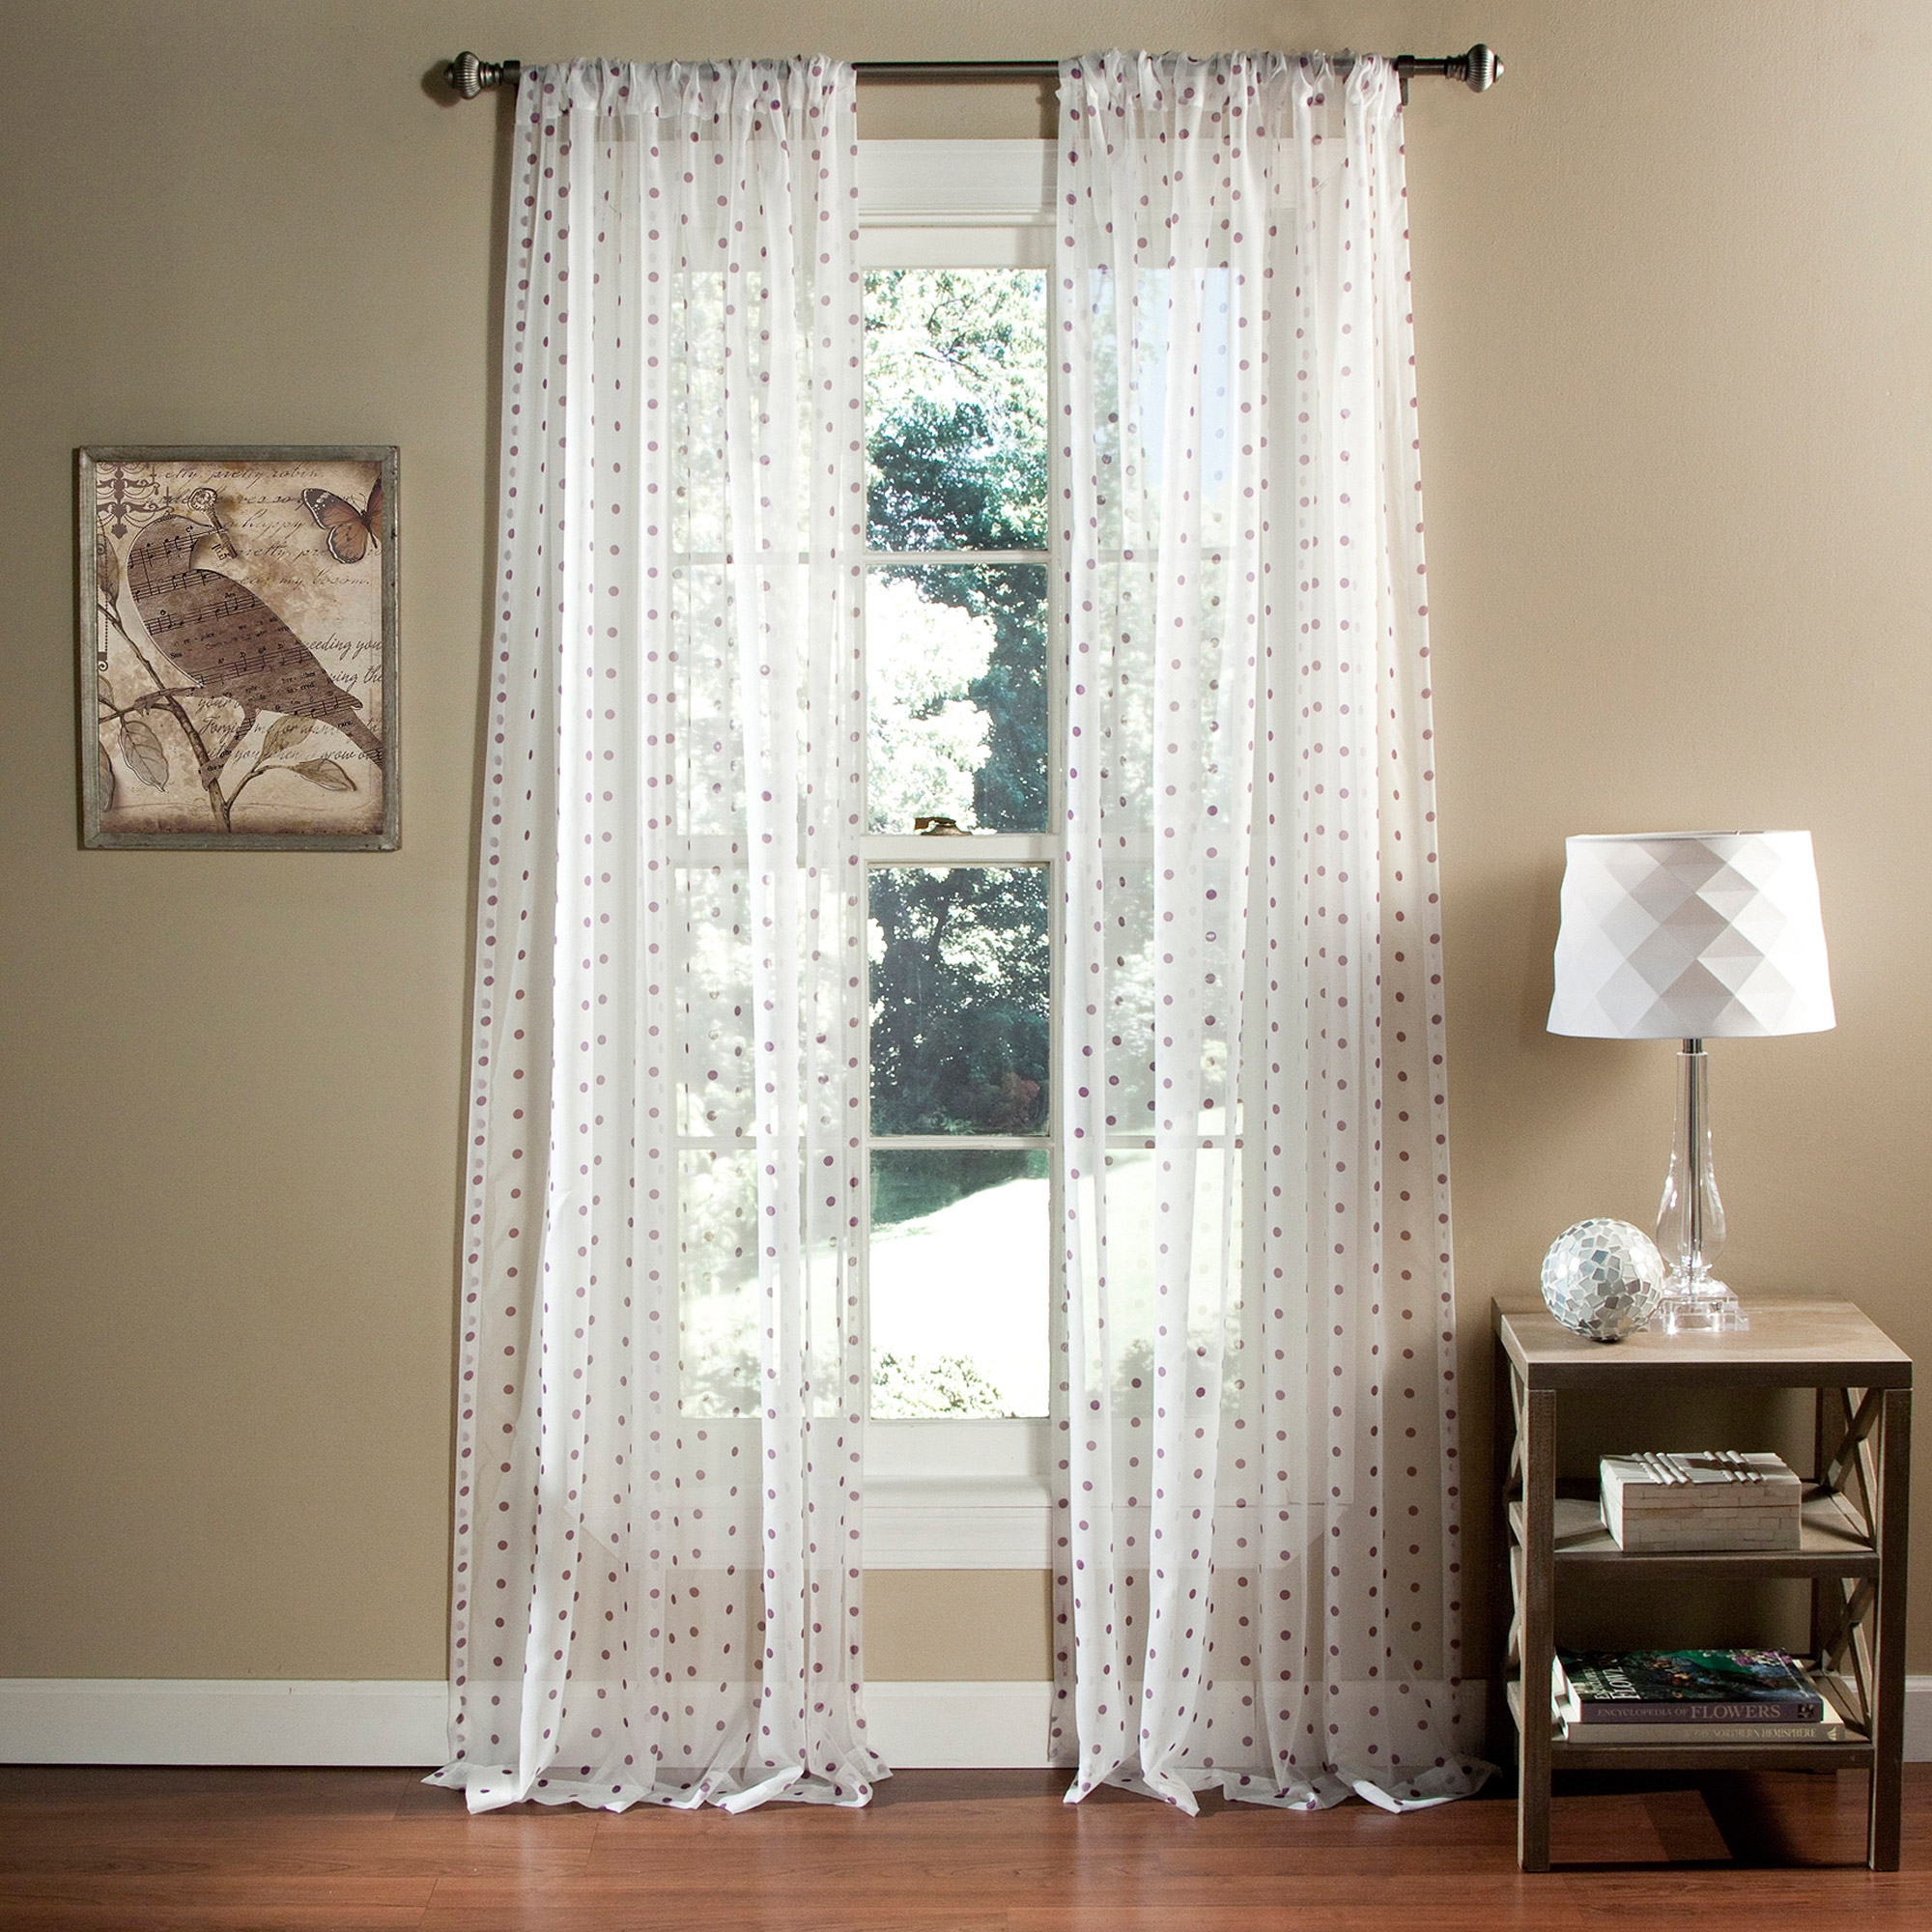 White Sheer Door Panel Curtains 25 43 Sheer White Curtain Panels Curtain Ideas